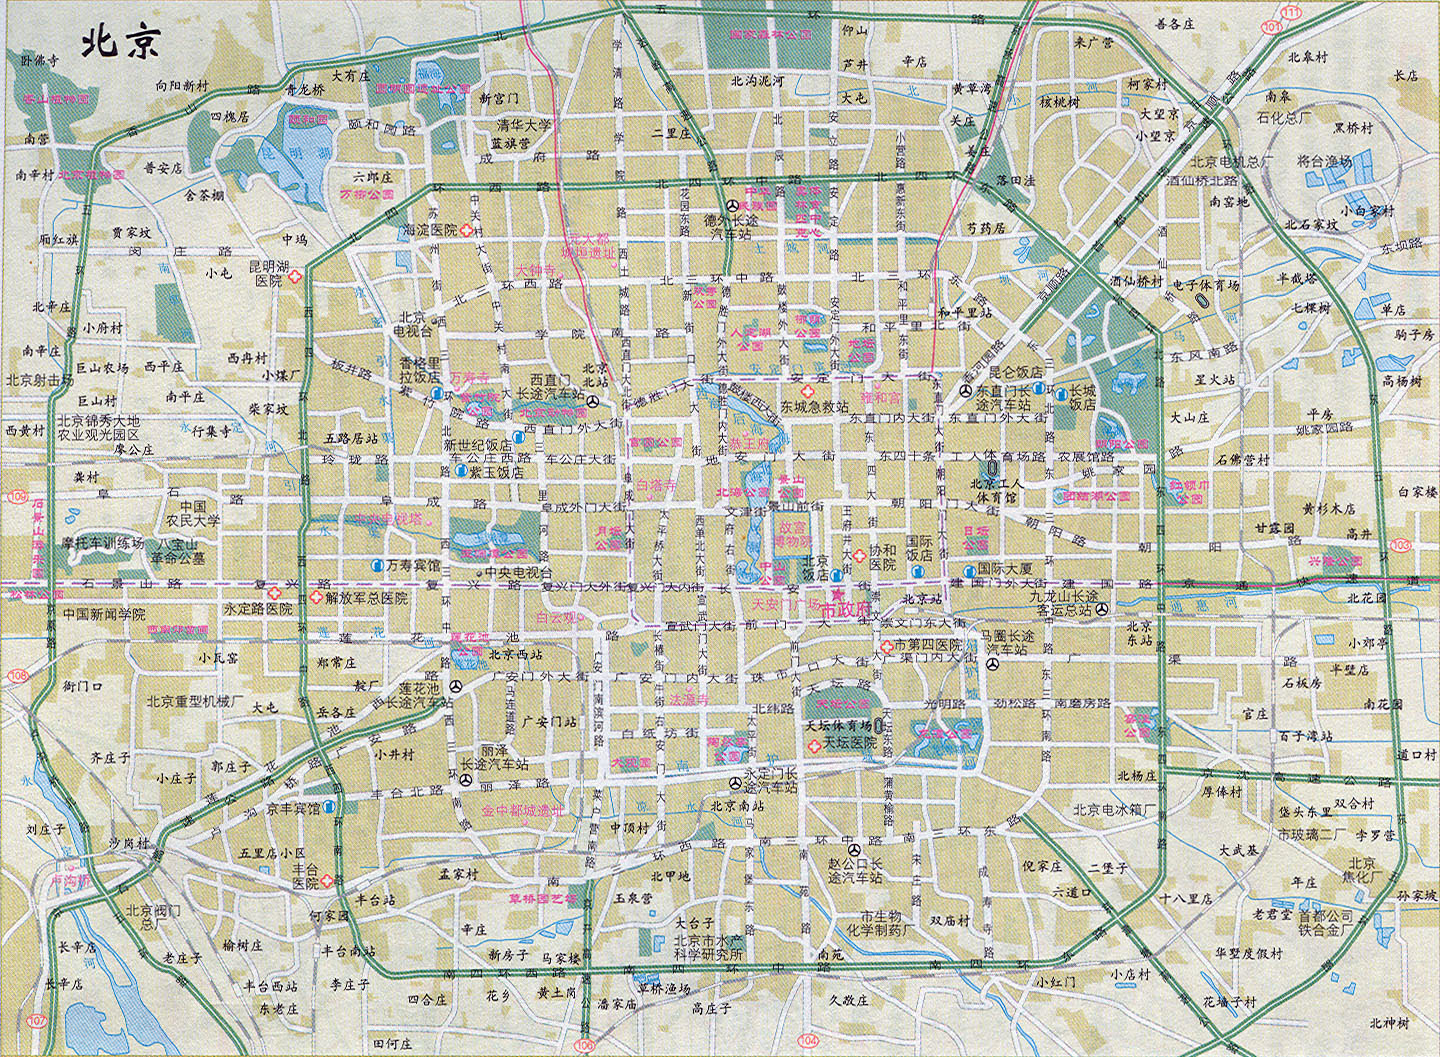 Chinese Map Of America.Large Road Map Of Beijing In Chinese Beijing Large Road Map In